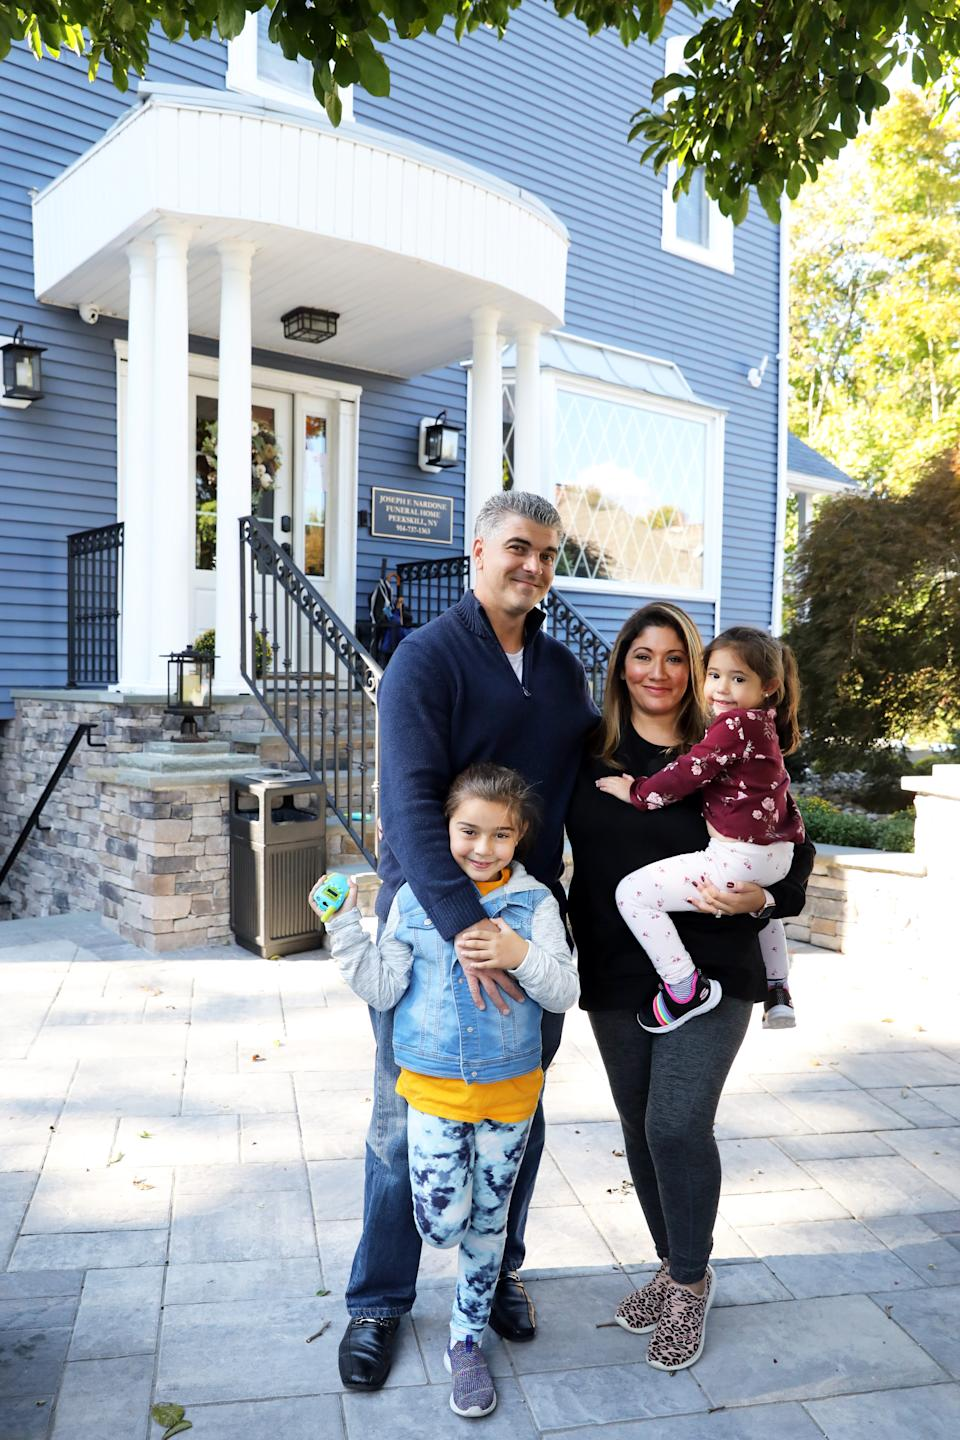 Jason and Leslie Chiaramonte with daughters Brooklyn, 6, and Phoenix, 3, outside the Joseph F. Nardone Funeral Home in Peekskill, where Mr. Chiaramonte is the funeral director, Oct. 9, 2020.